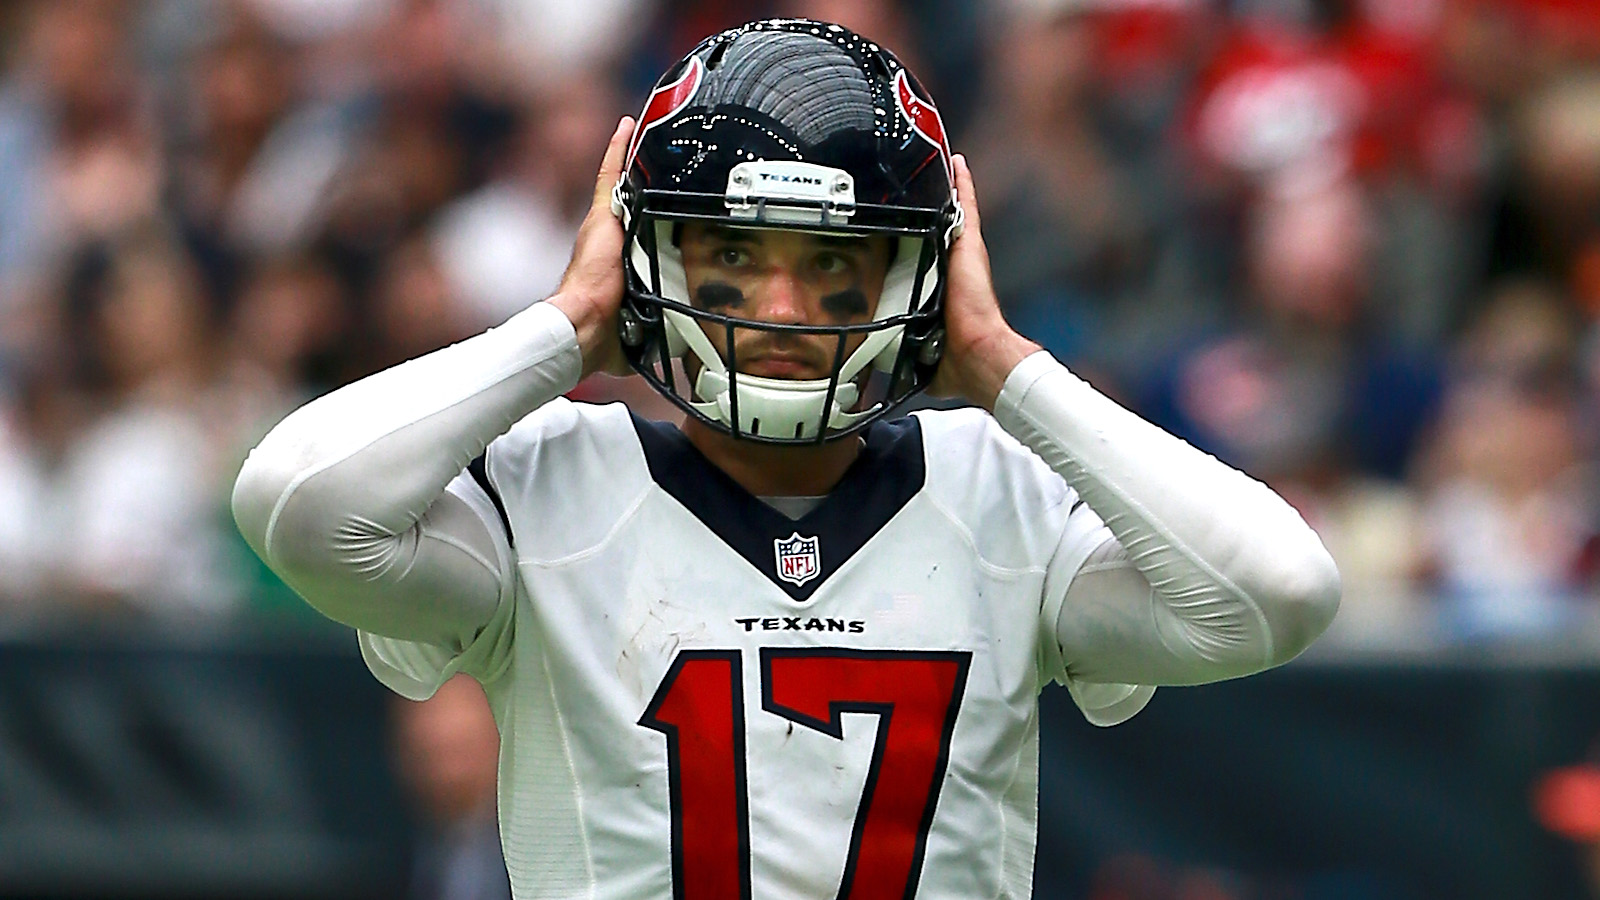 Brock Osweiler has been a $72 million disaster for the Texans